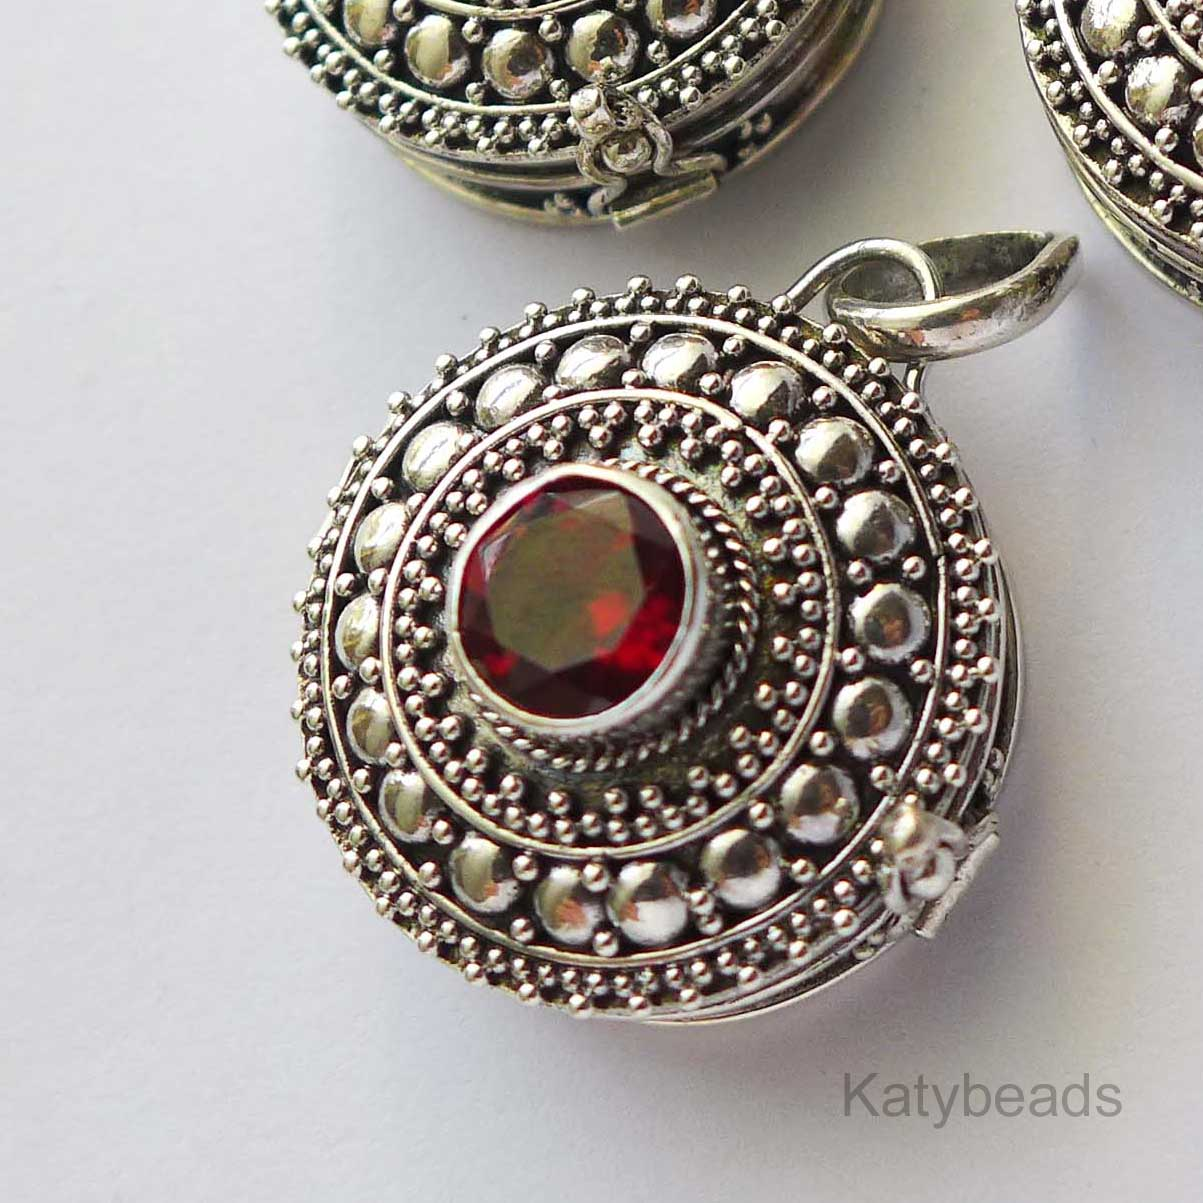 21mm Sterling Silver Poison Locket Keepsake Pendant with Faceted Garnet PL10